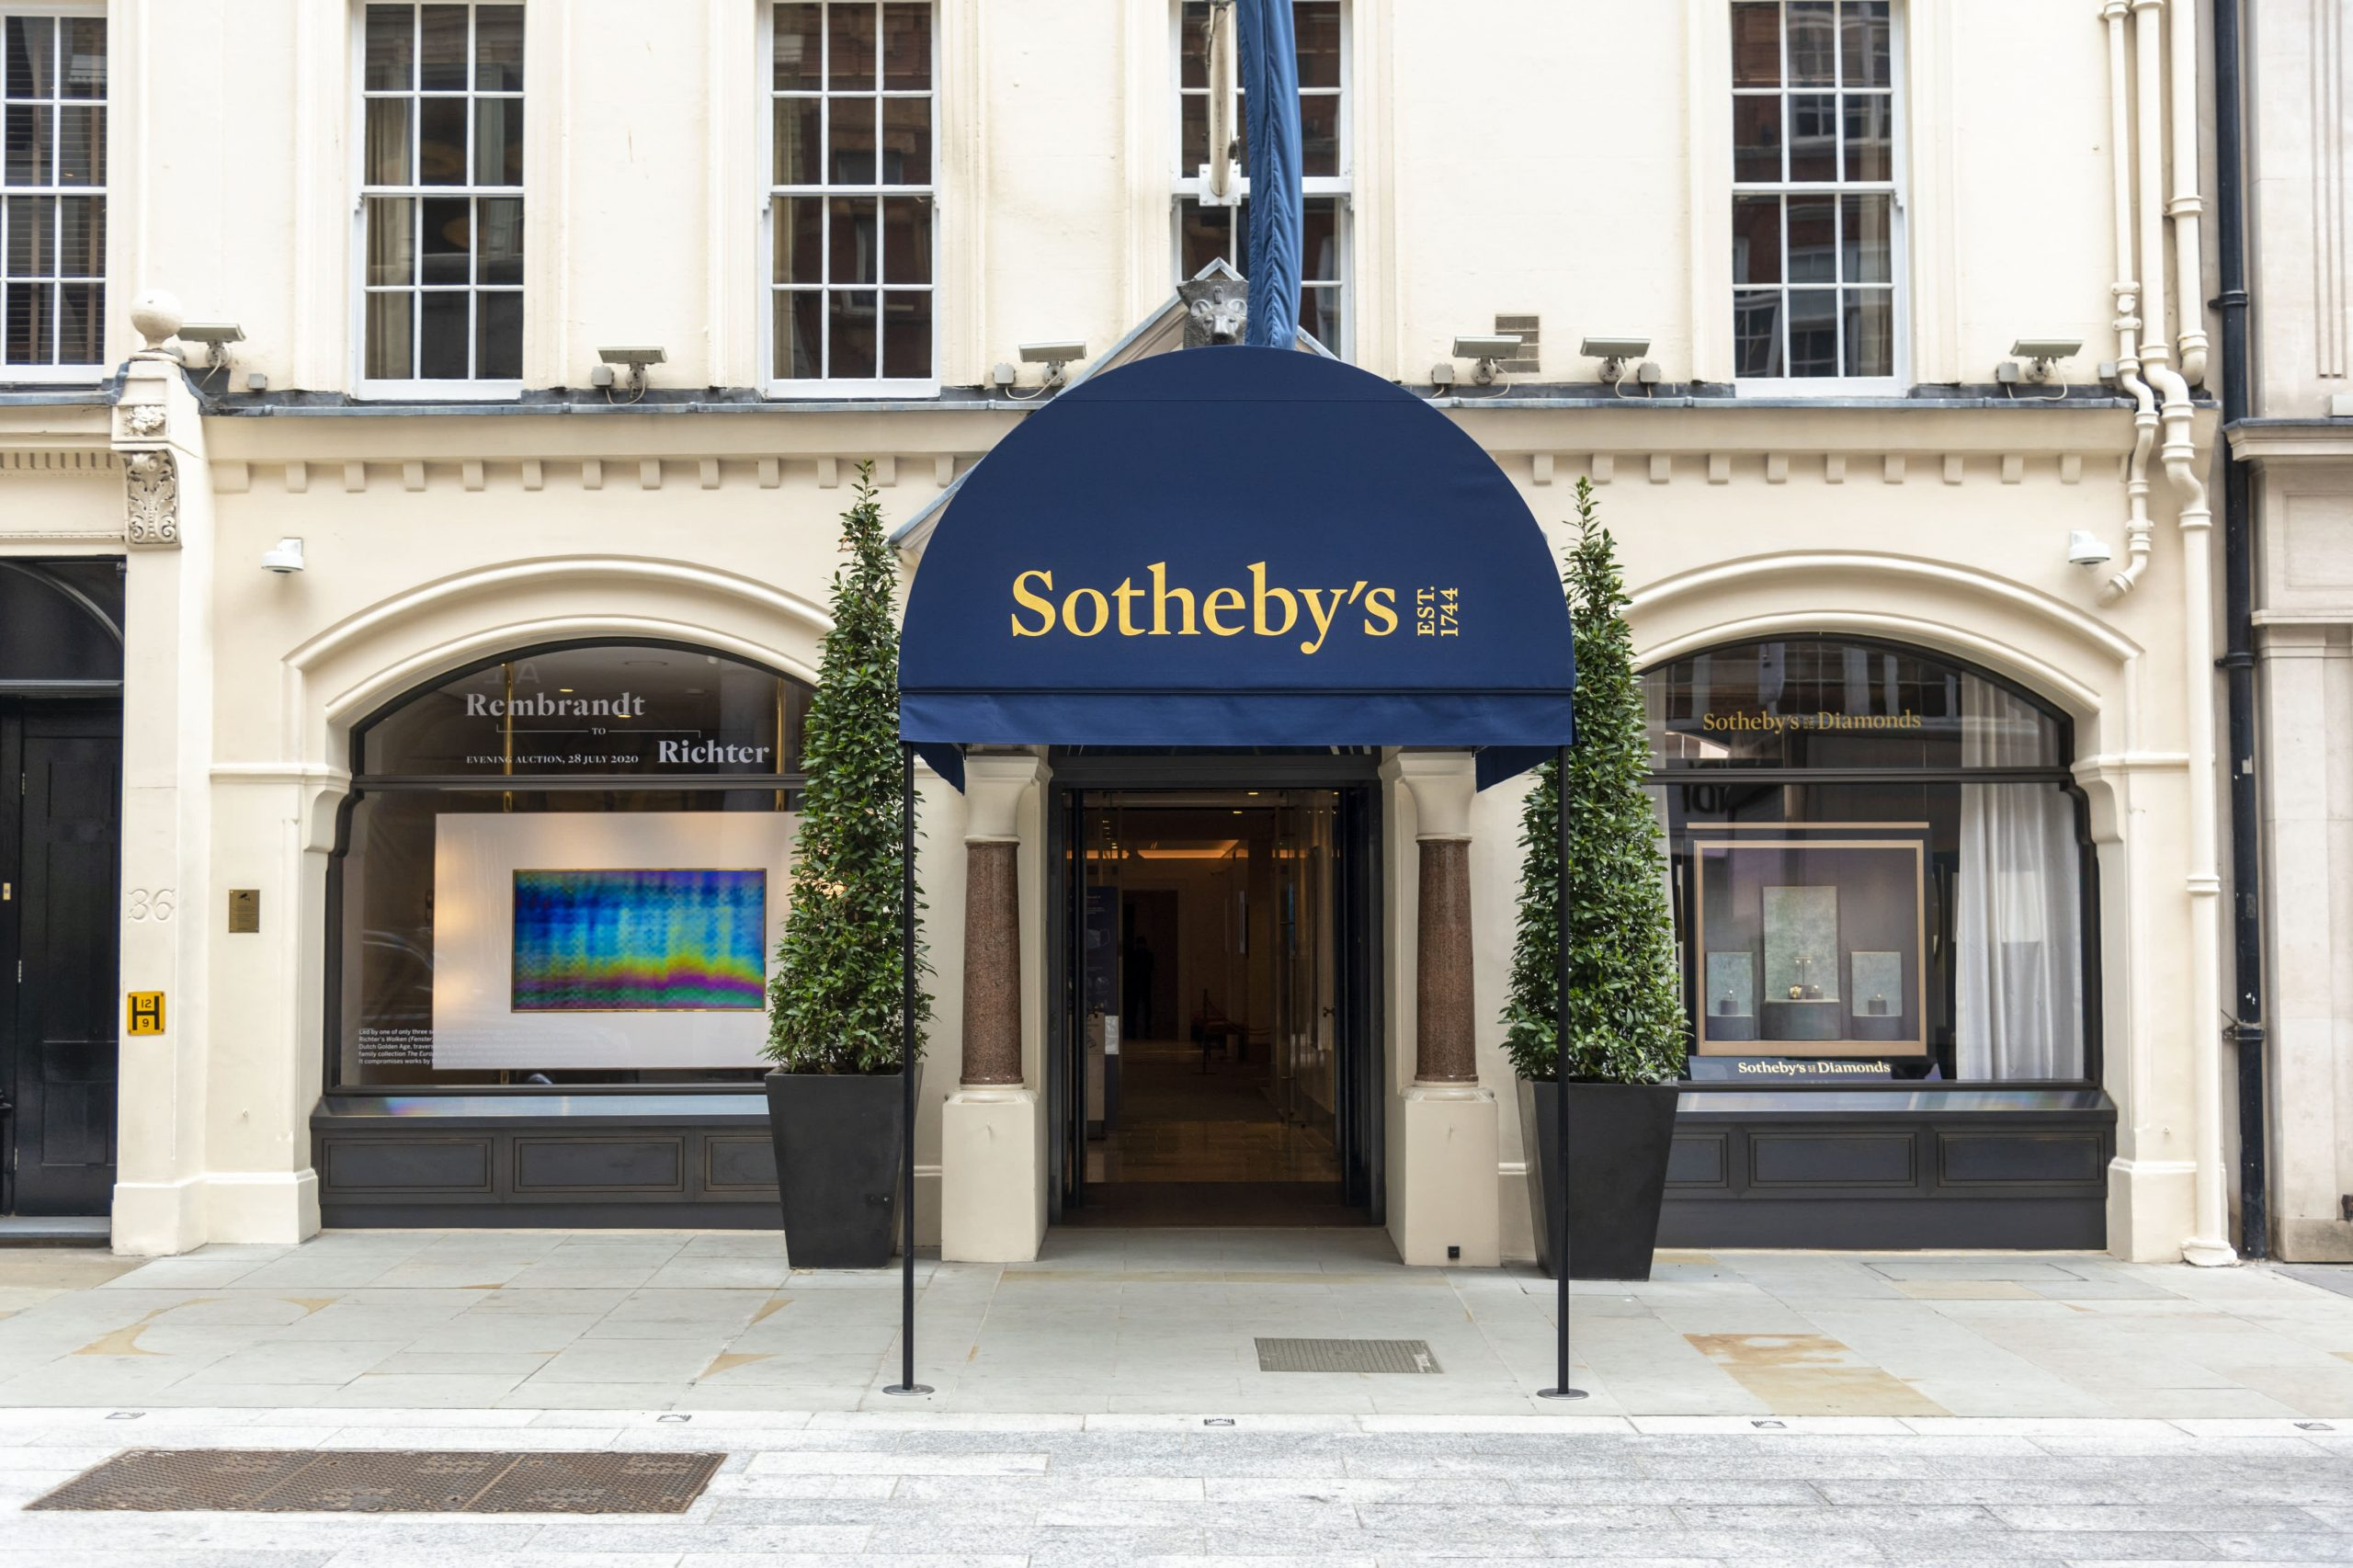 Auction house Sotheby's enters NFT world through collaboration with digital artist Pak